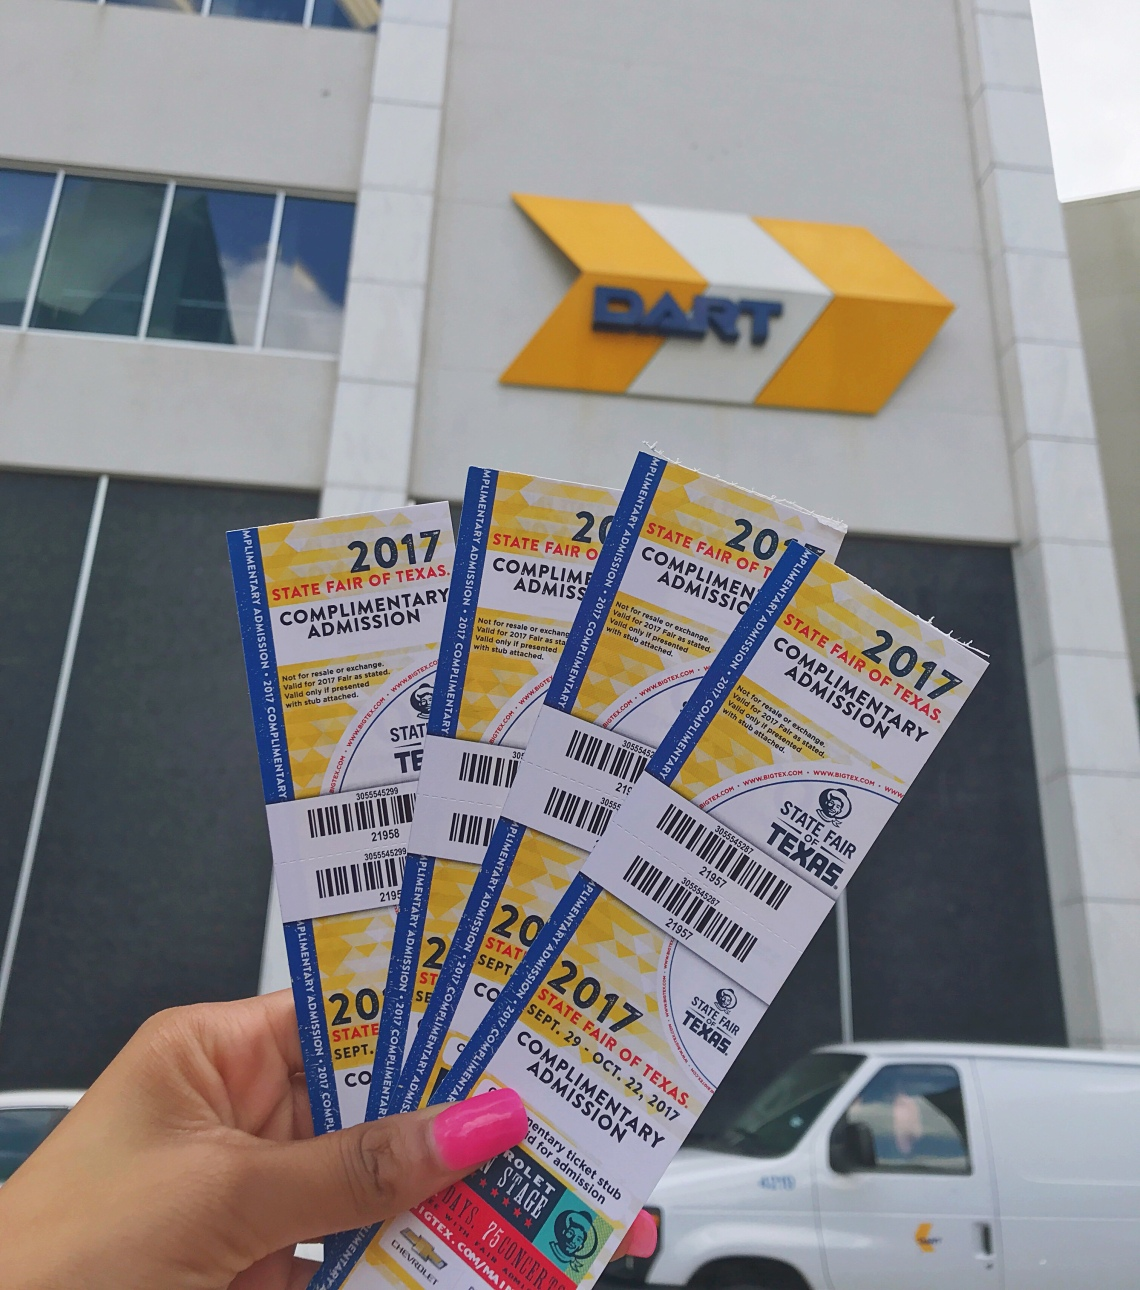 DART State Fair Tickets